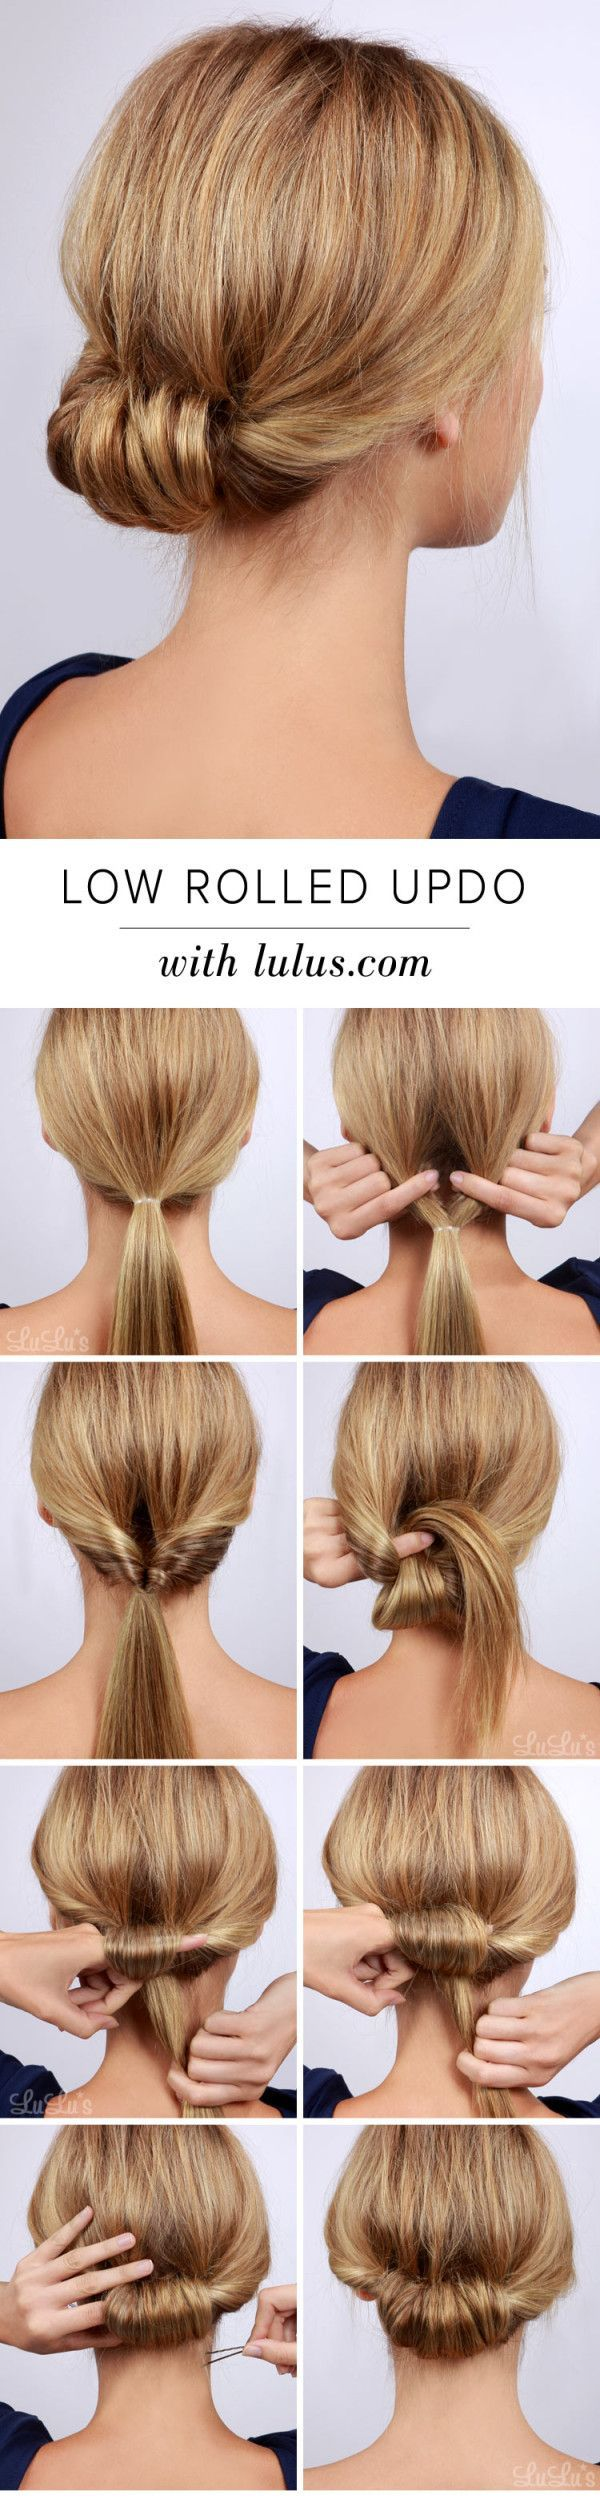 17 Fast and Super Creative DIY Hairstyle Ideas For More Spectacular Holidays